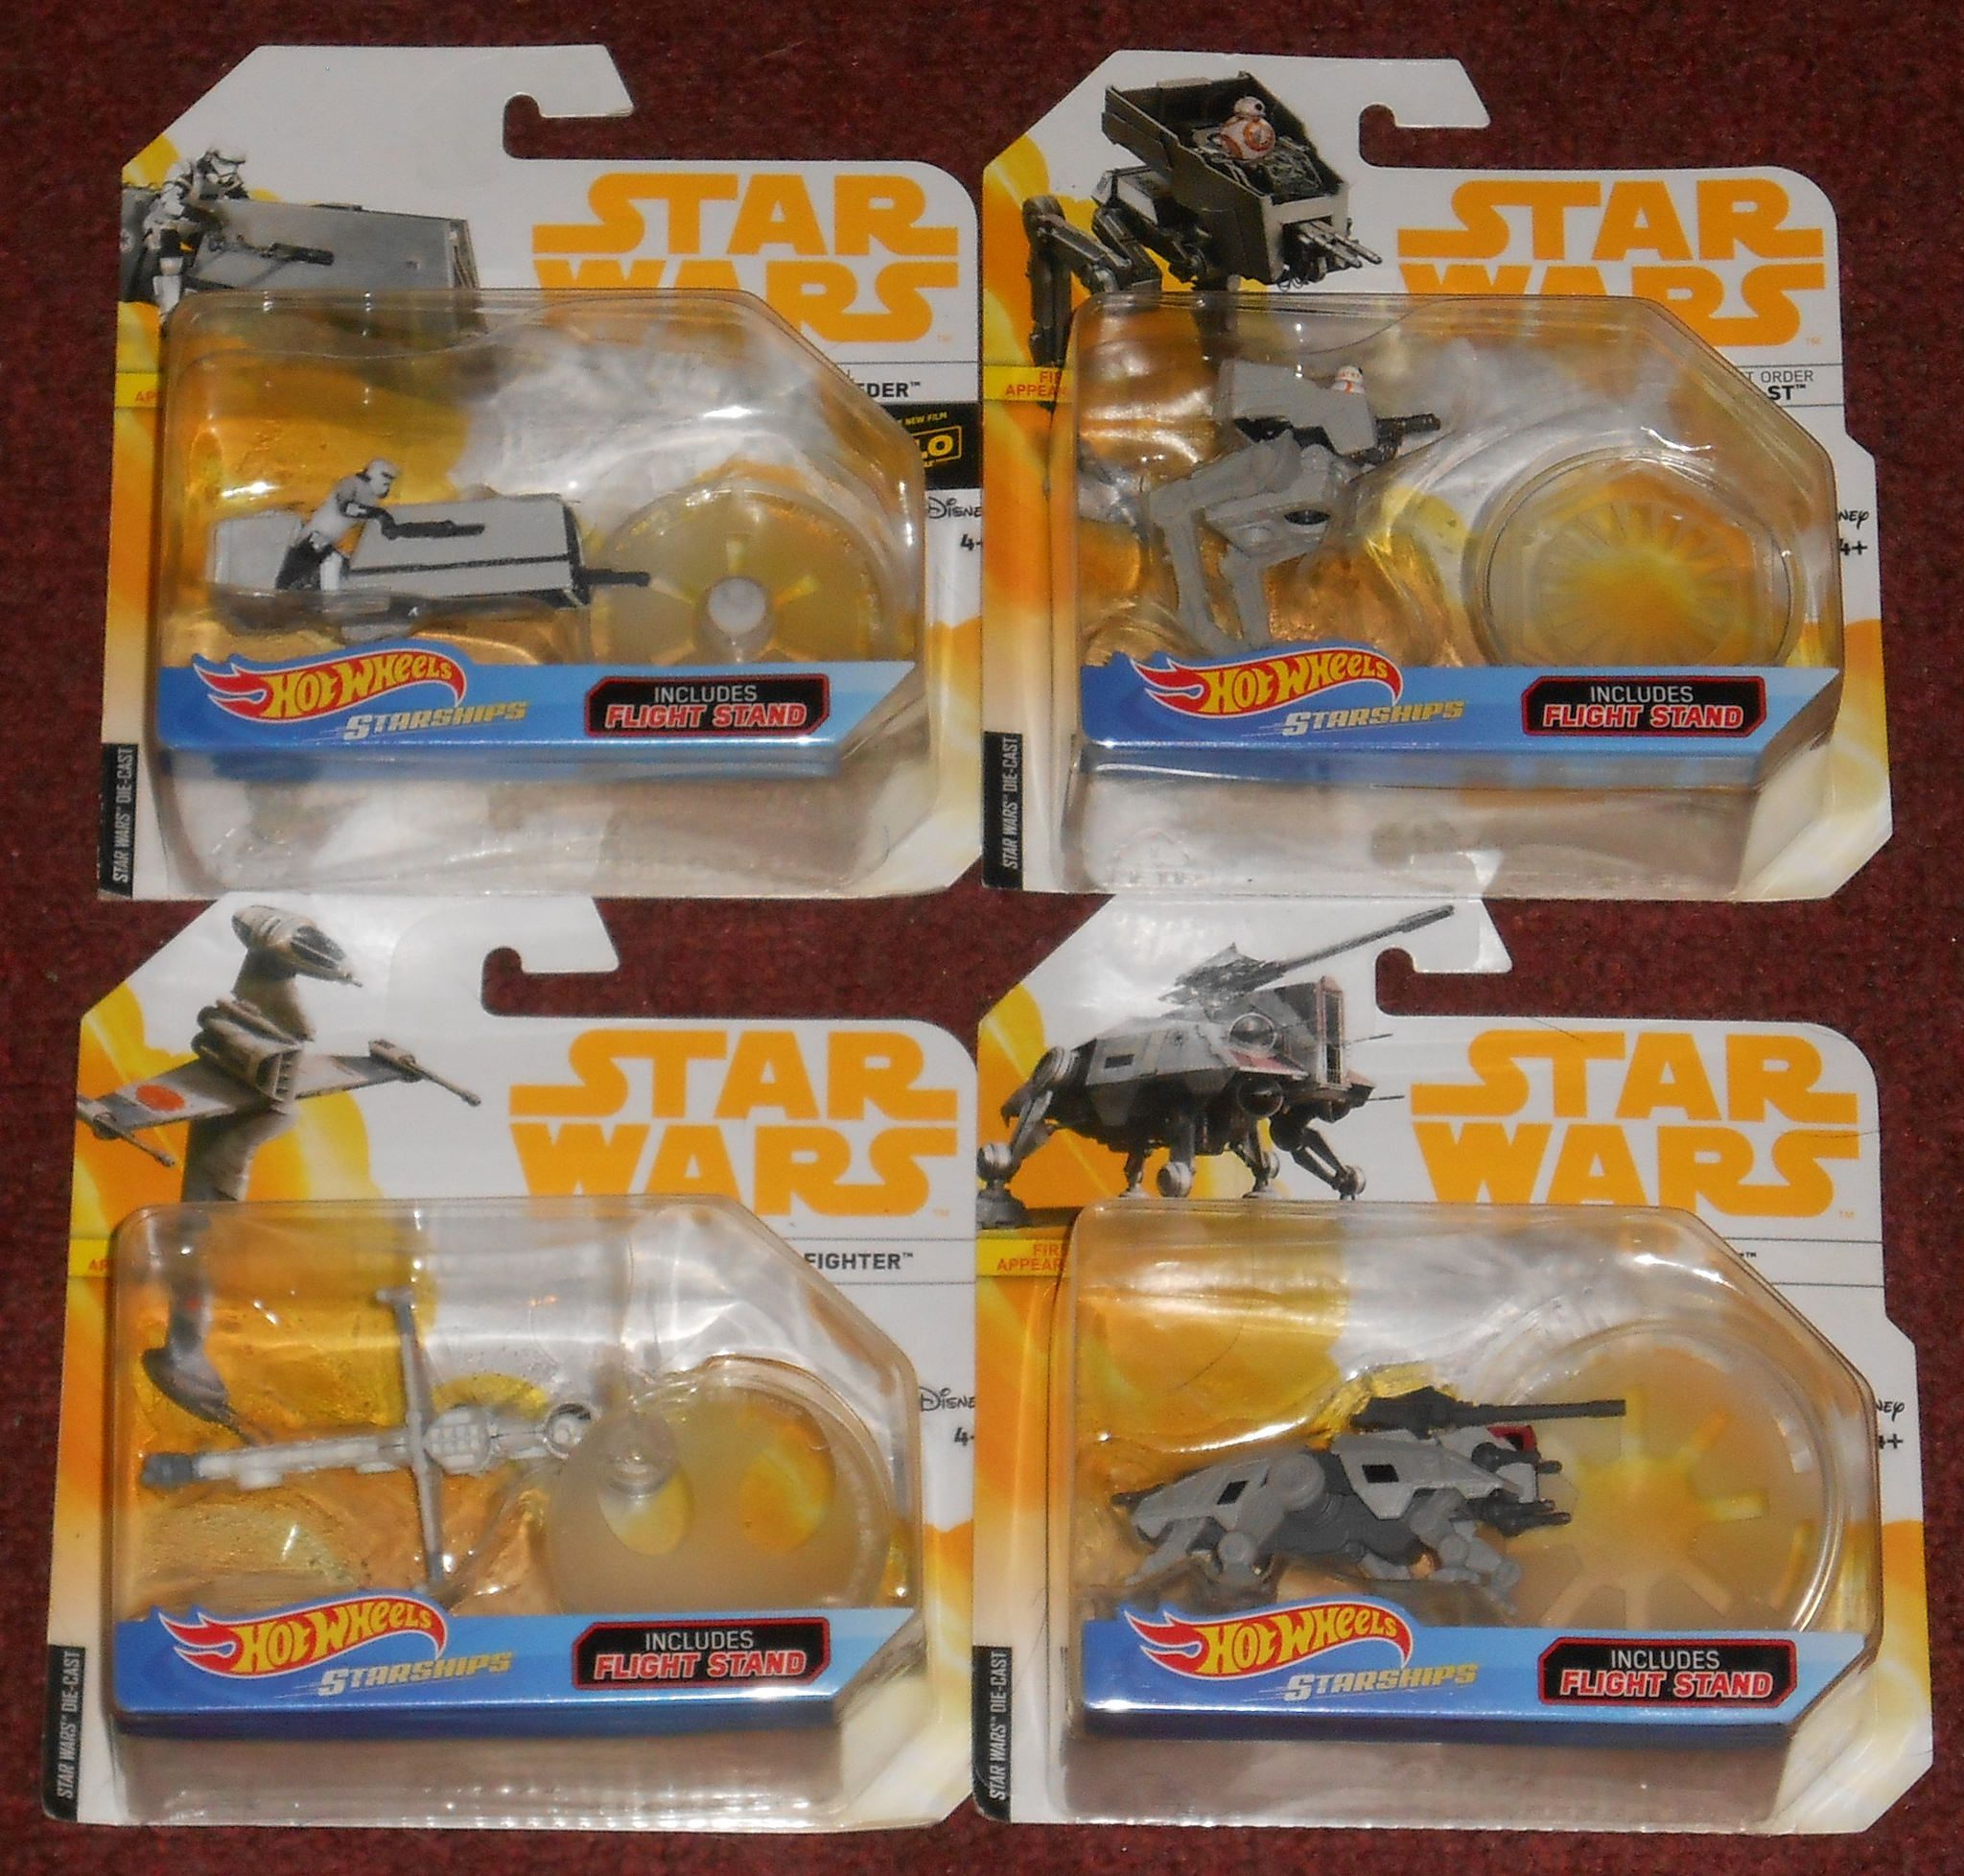 Hot Wheels Star Wars Starships Star Wars Toys Starship Star Wars